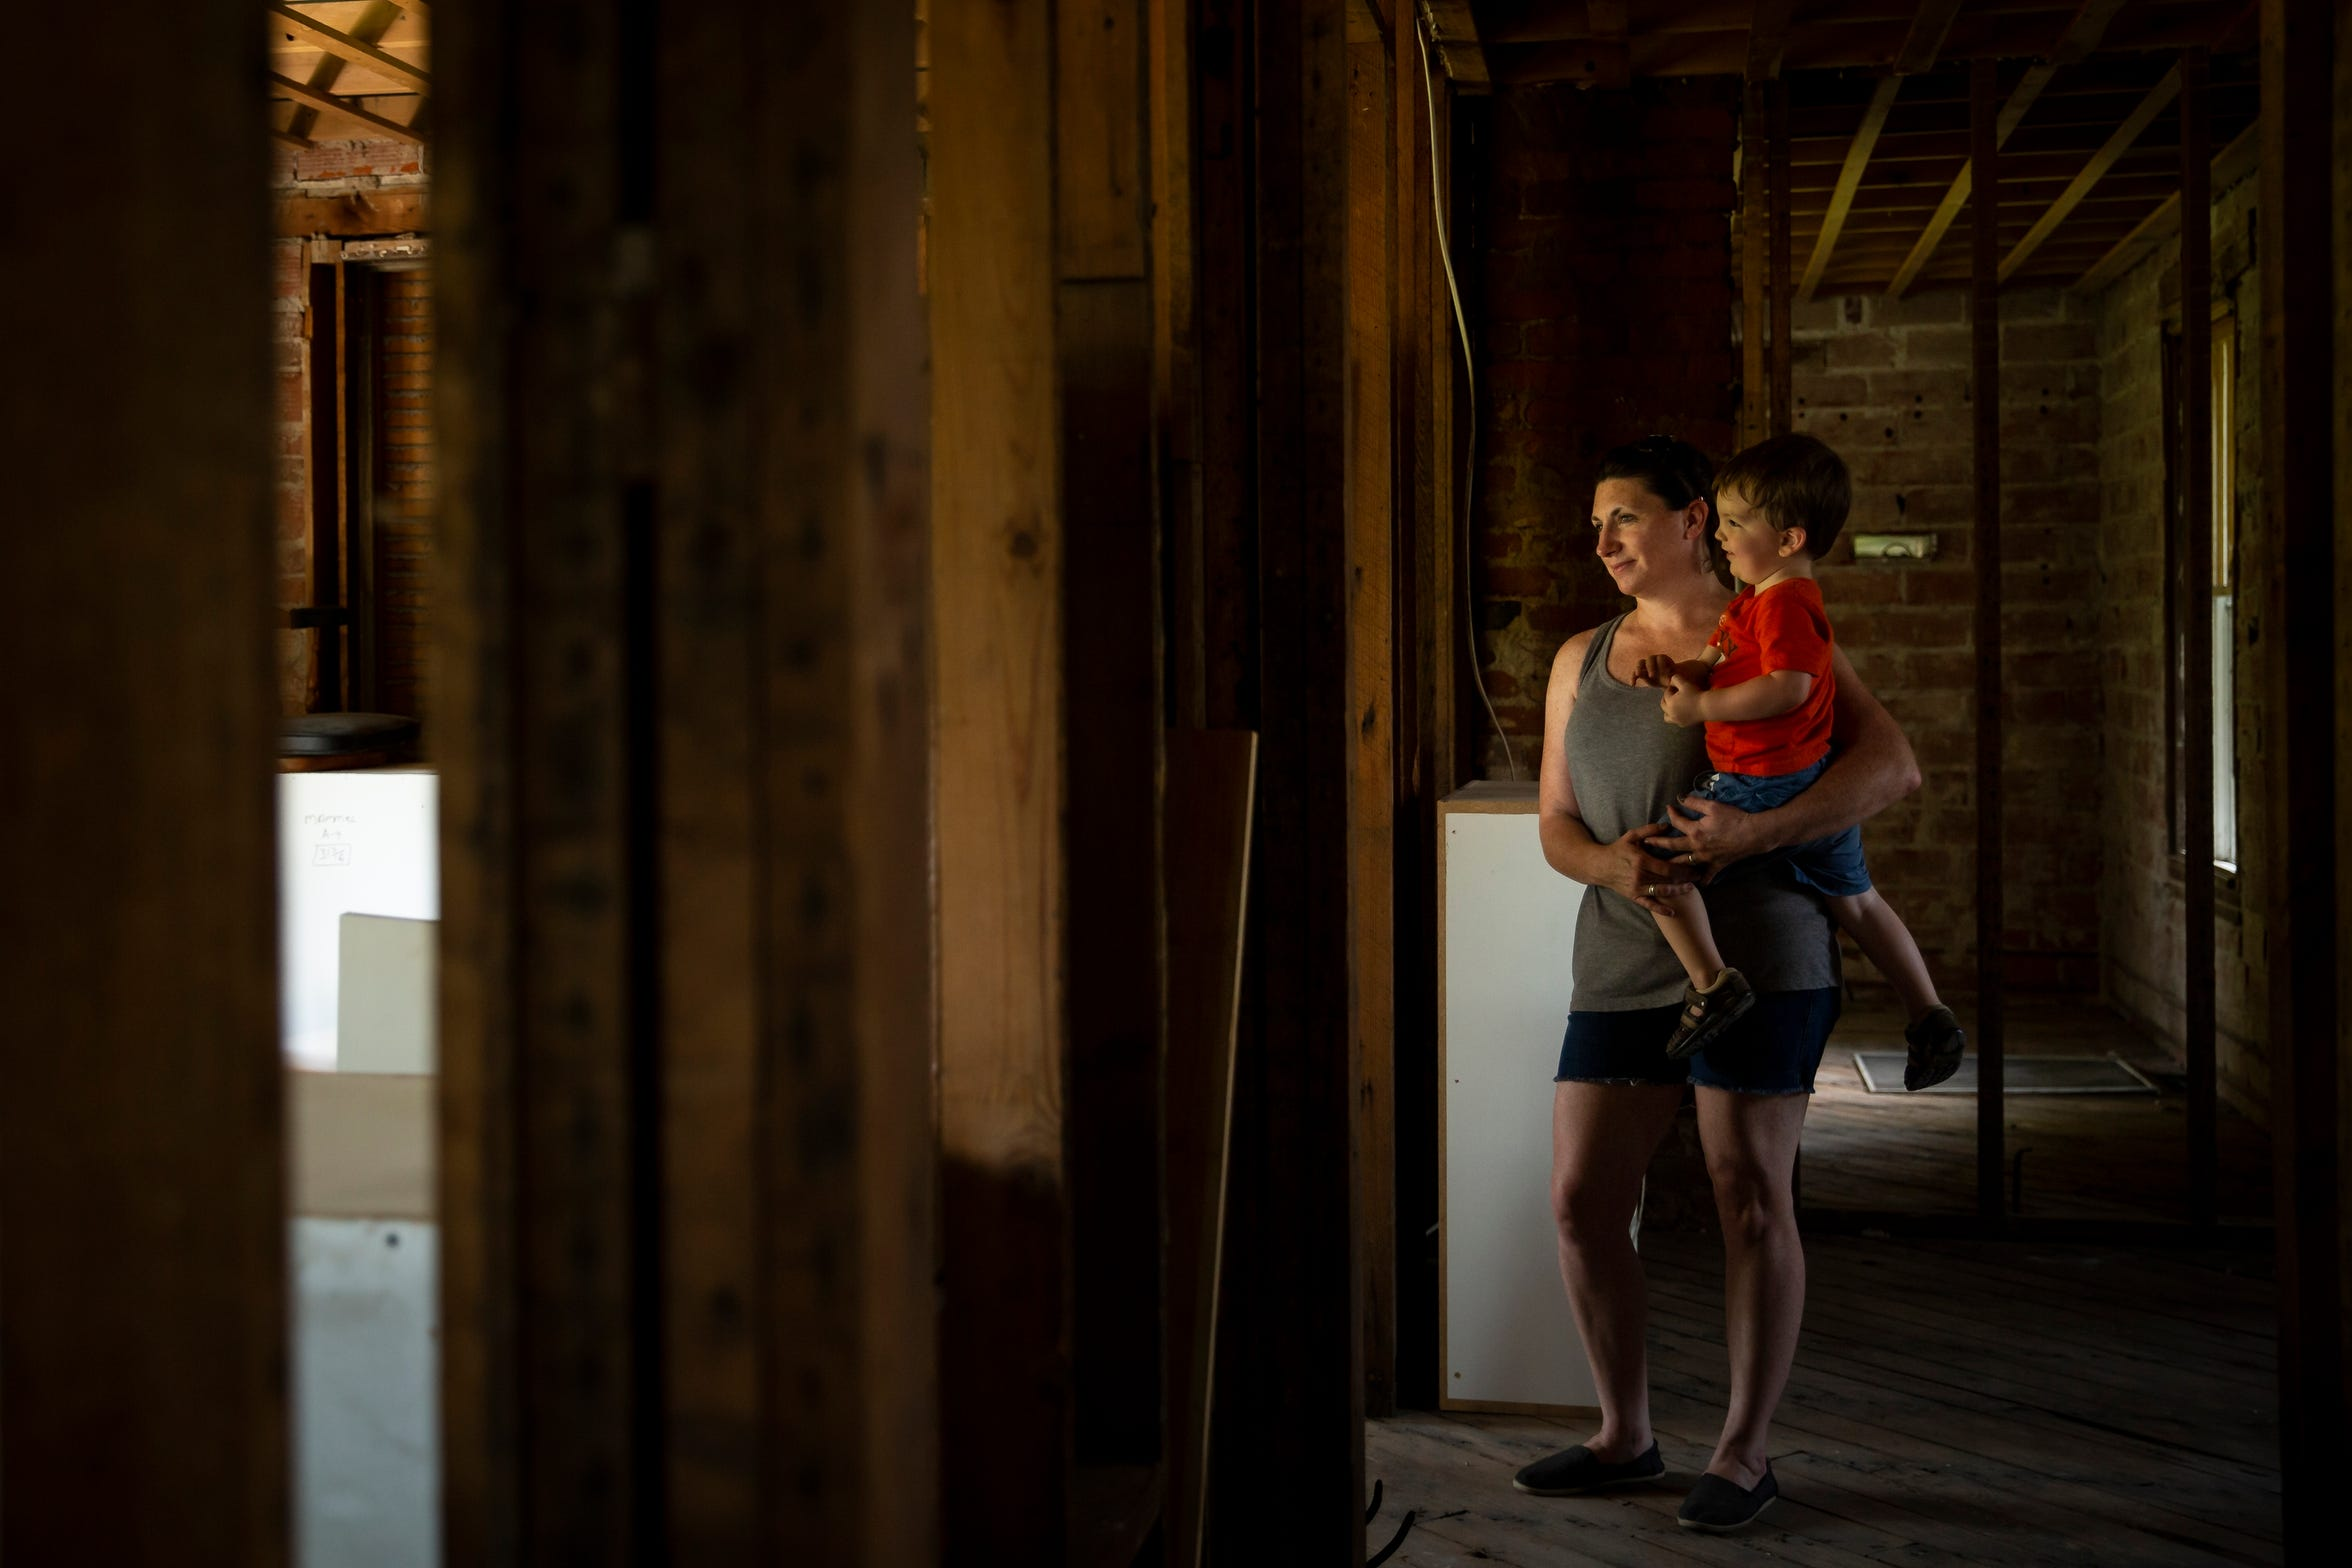 Amanda Tomlin holds her son in what's left of her flooded Hamburg home. The home was hit with 10 feet of water in March, just nine days after she, her husband and their two young sons moved in.